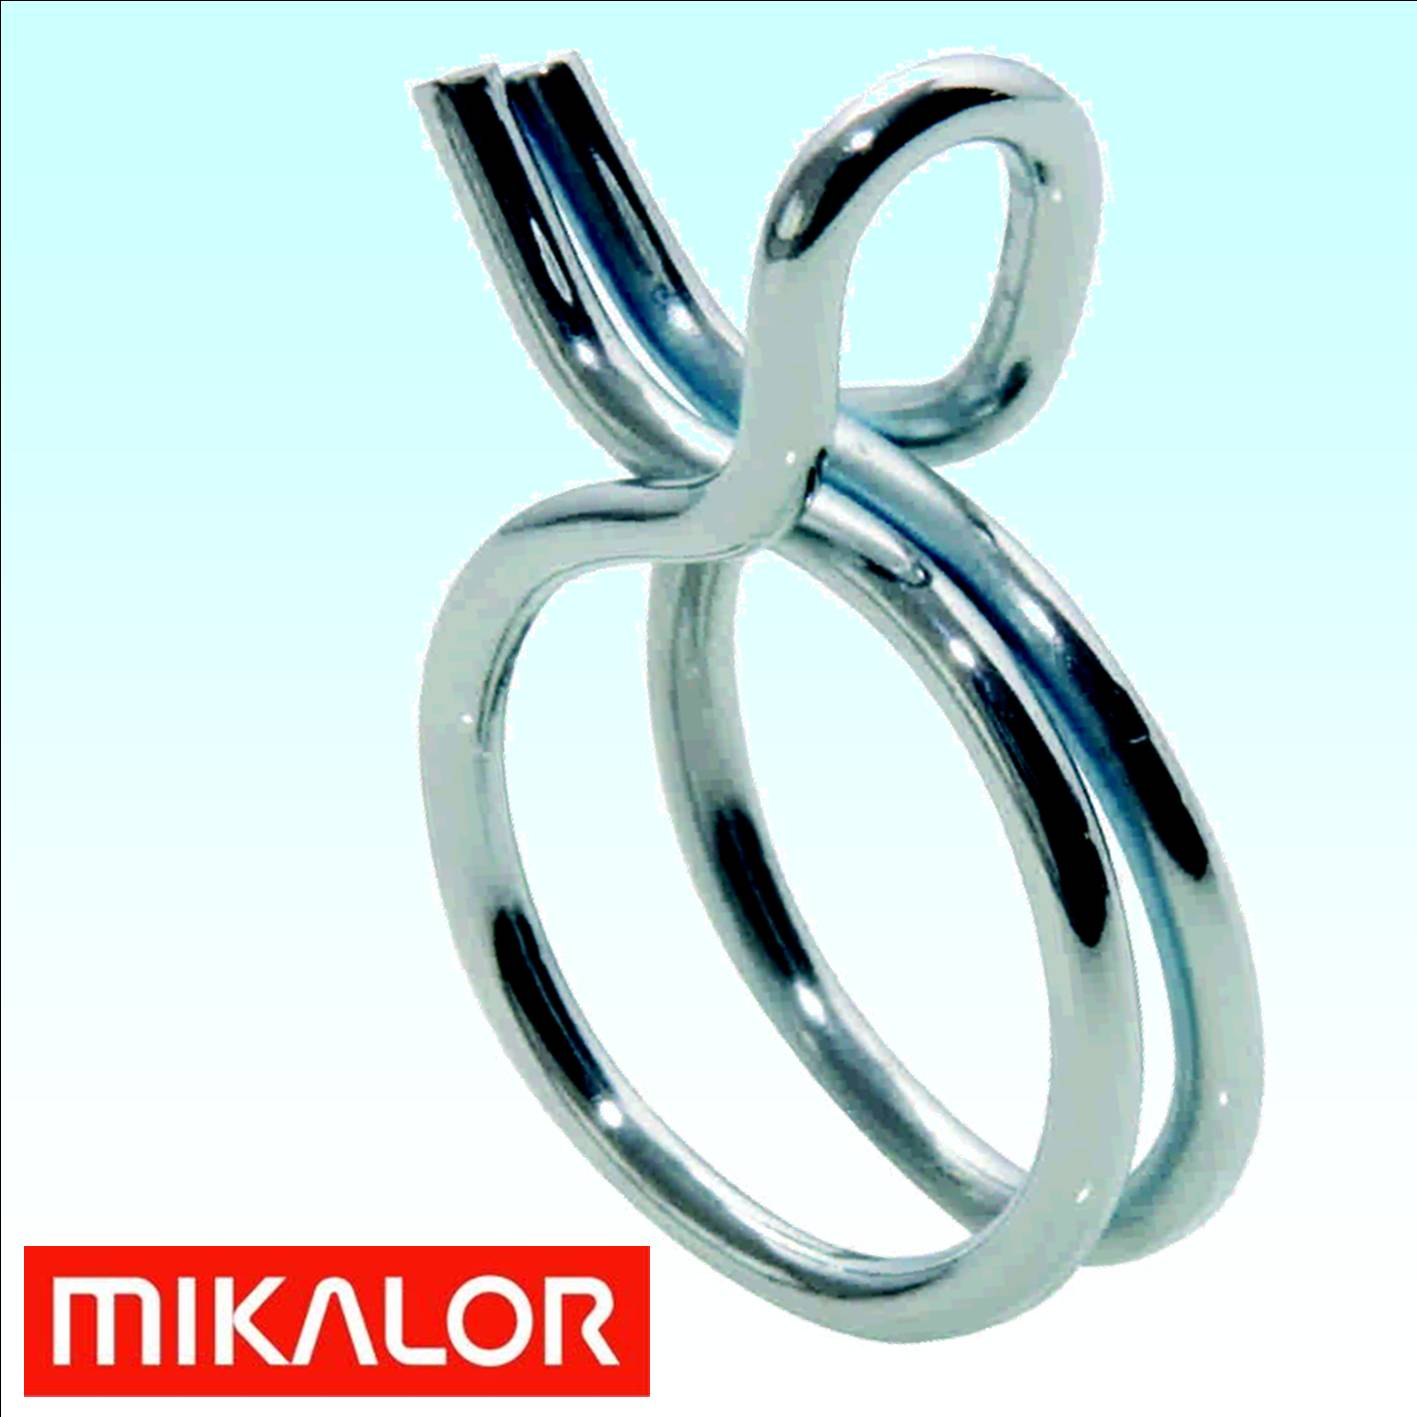 Mikalor Double Wire Spring Hose Clip 14.4 - 15.1mm